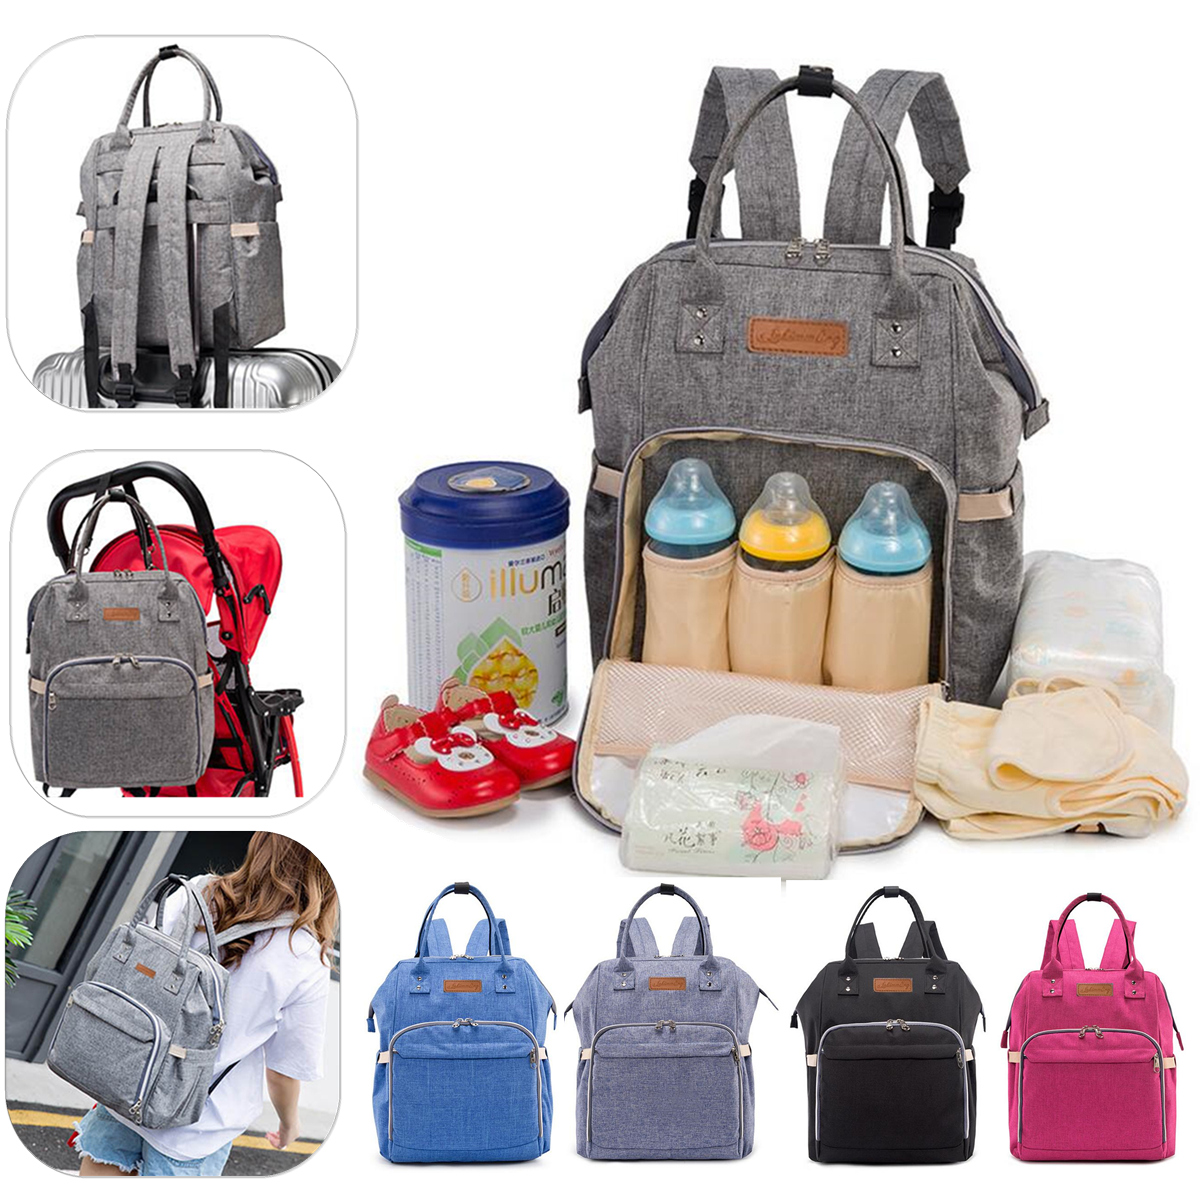 Multifunction Mummy Backpack Diaper Nappy Newborn Baby Changing Bag Travel Bags